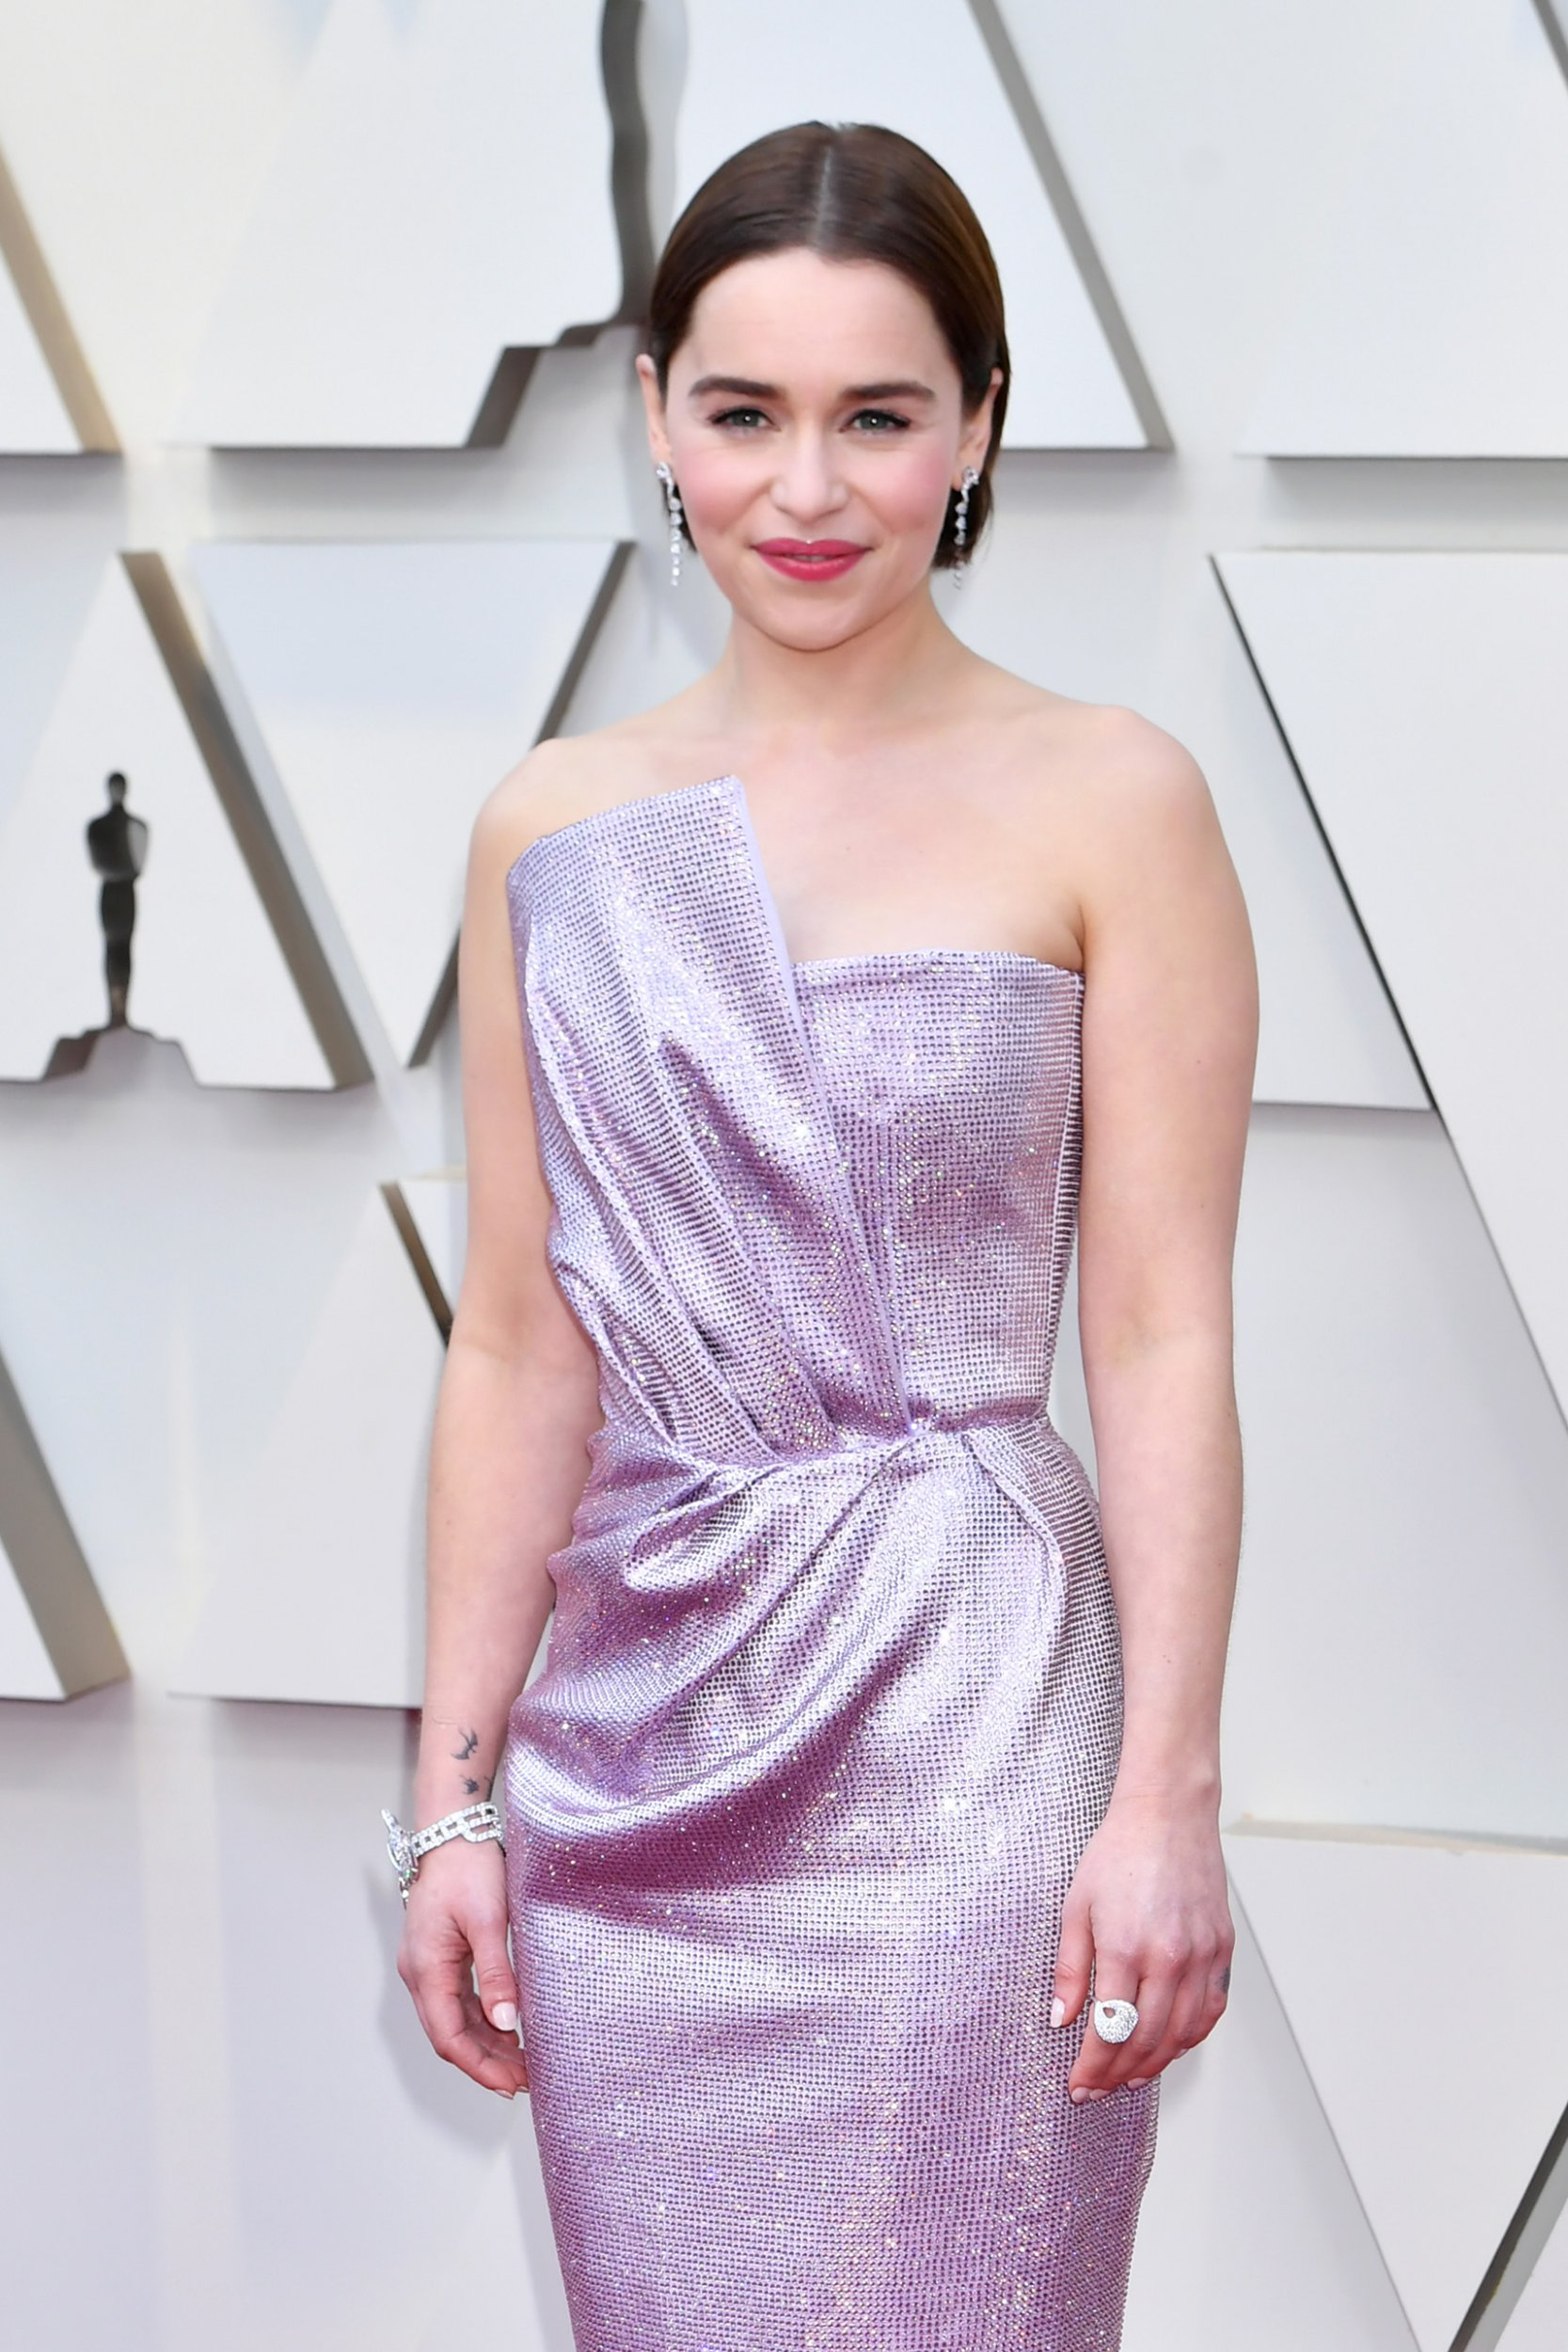 HOLLYWOOD, CA - FEBRUARY 24: Emilia Clarke attends the 91st Annual Academy Awards at Hollywood and Highland on February 24, 2019 in Hollywood, California. (Photo by Jeff Kravitz/FilmMagic)